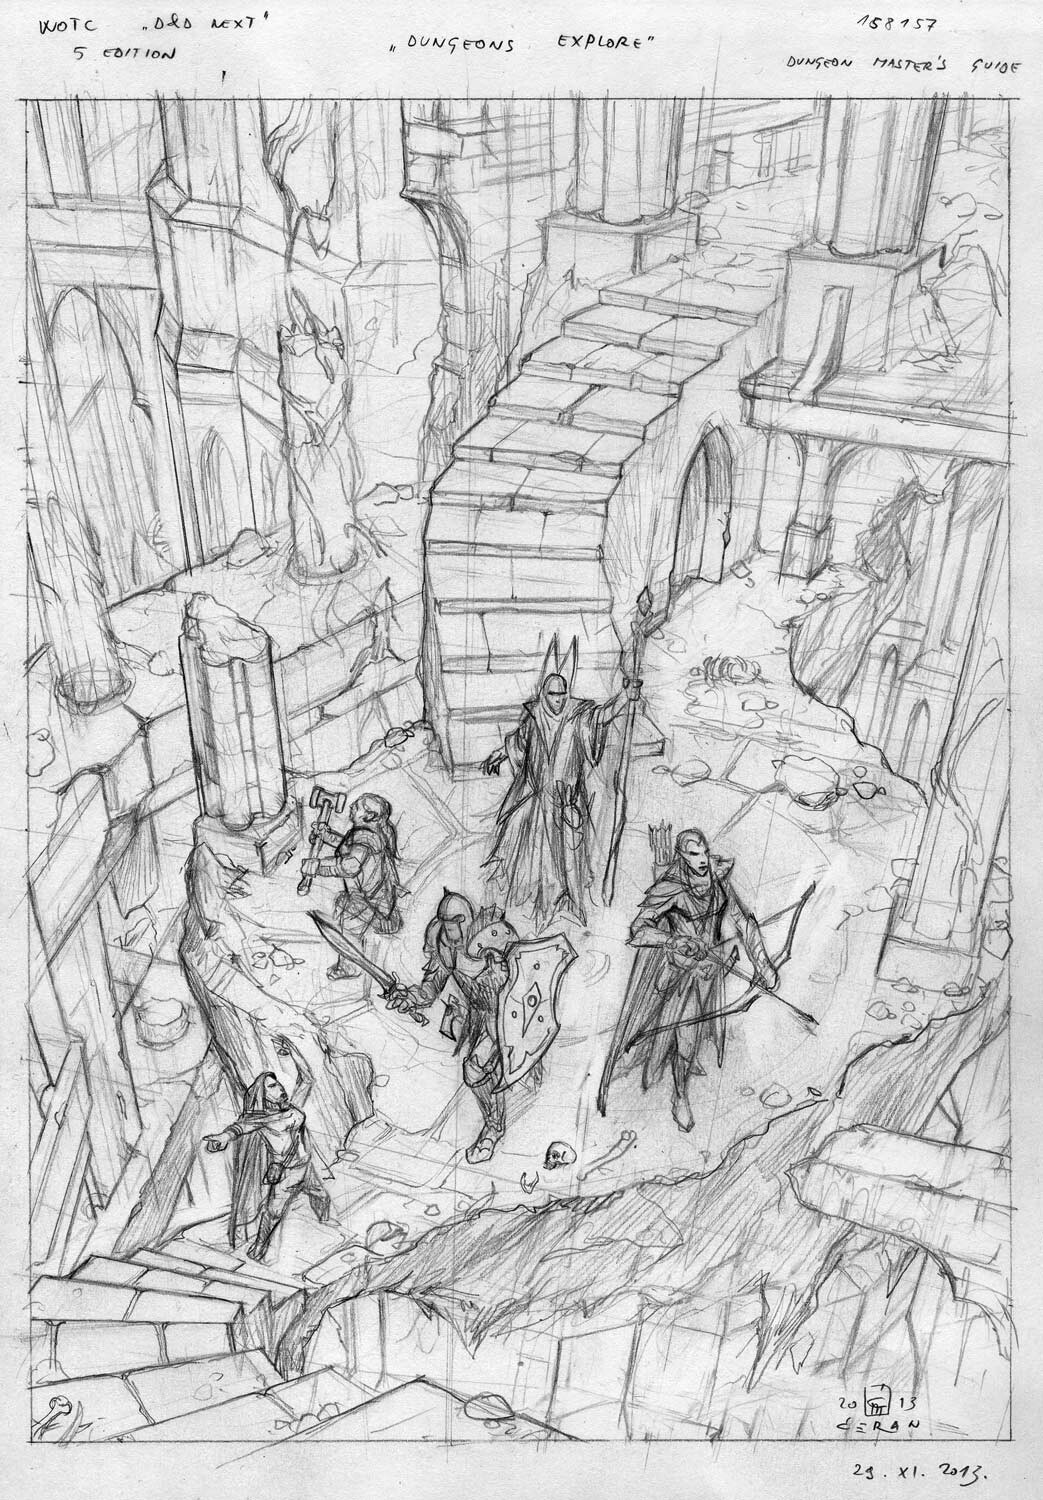 "sketch for the painting ""Dungeons Explore"" (D&D Next 5 Edition, Dungeons Master Guide), Wizards of the Coast 